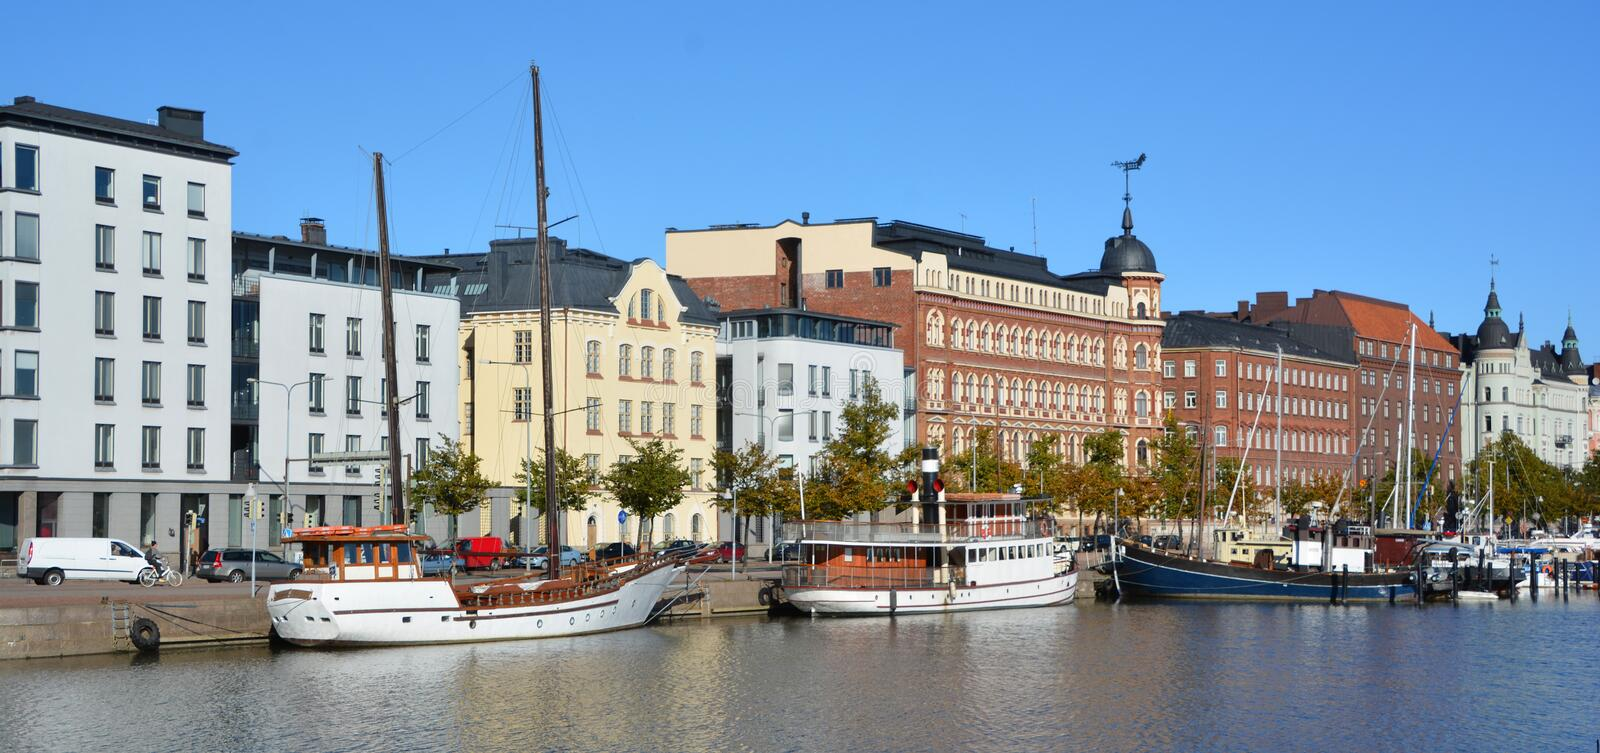 Pohjoisranta quarter. HELSINKI FINLAND 09 25 2015: Pohjoisranta is located in center and runs along northern harbor. On waterfront there are houses built in royalty free stock photos